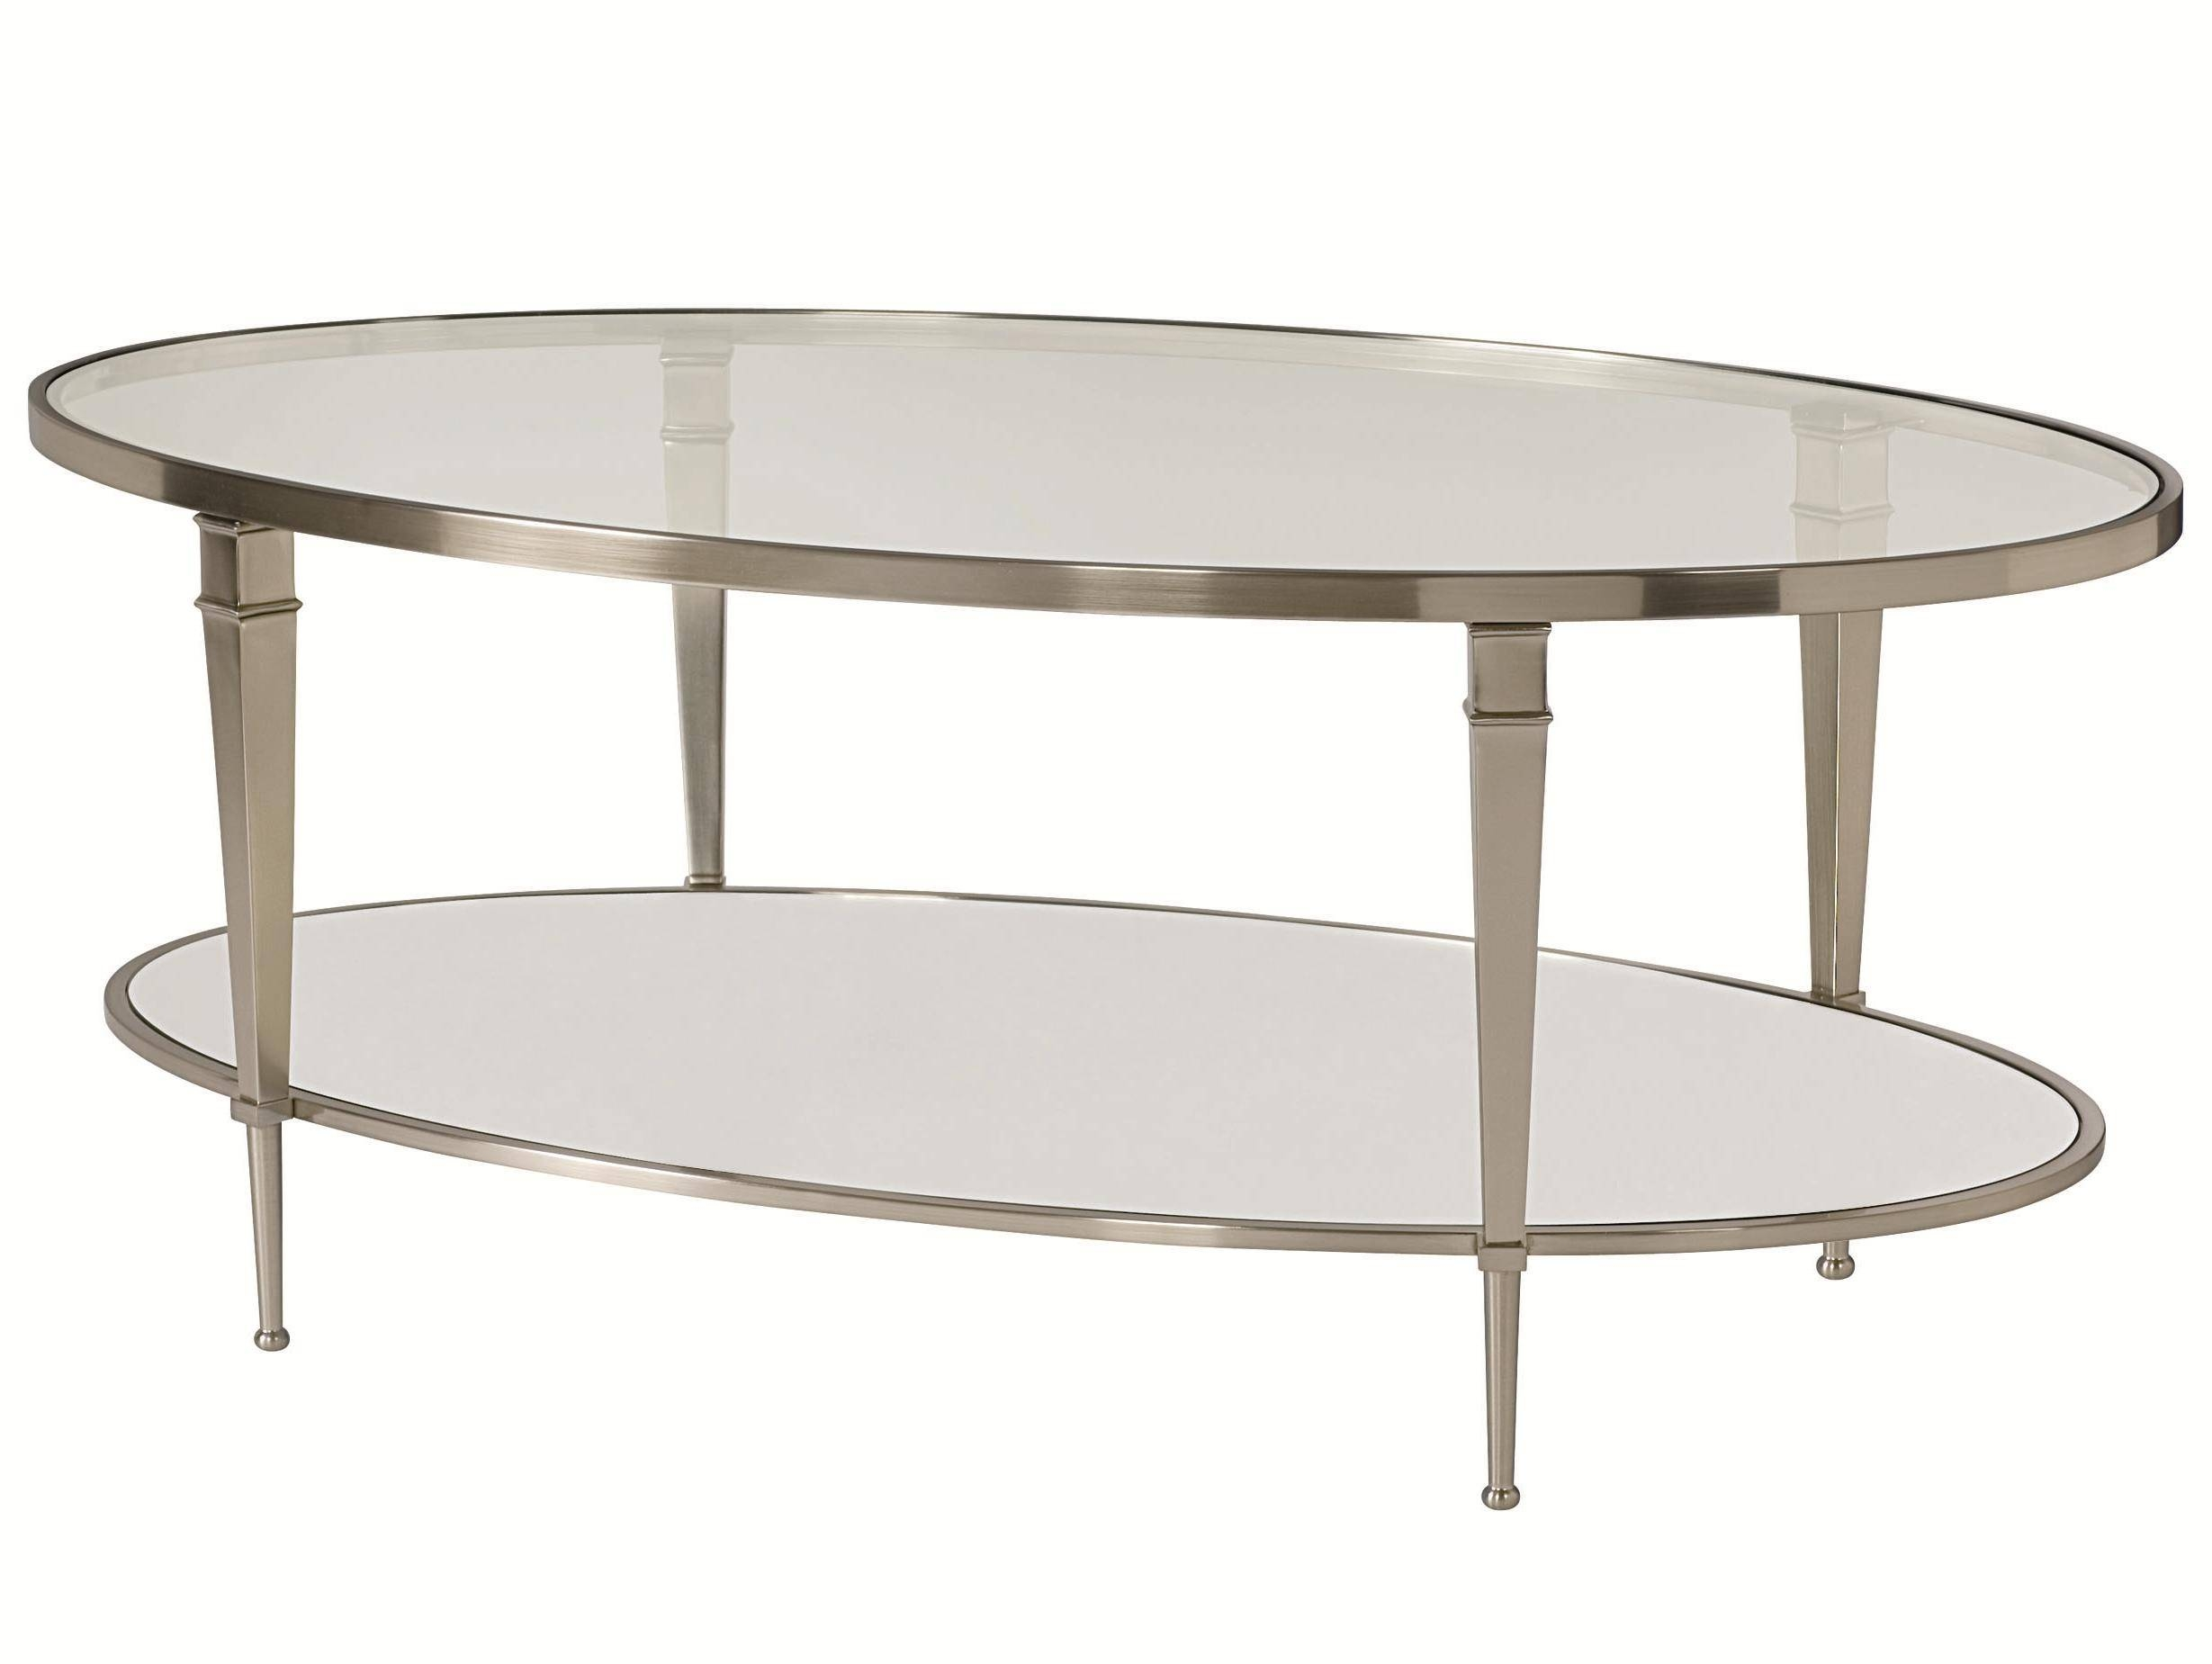 Oval Satin Nickel Antique Mirror Finish Cocktail Tablehammary with Oval Mirrored Coffee Tables (Image 25 of 30)